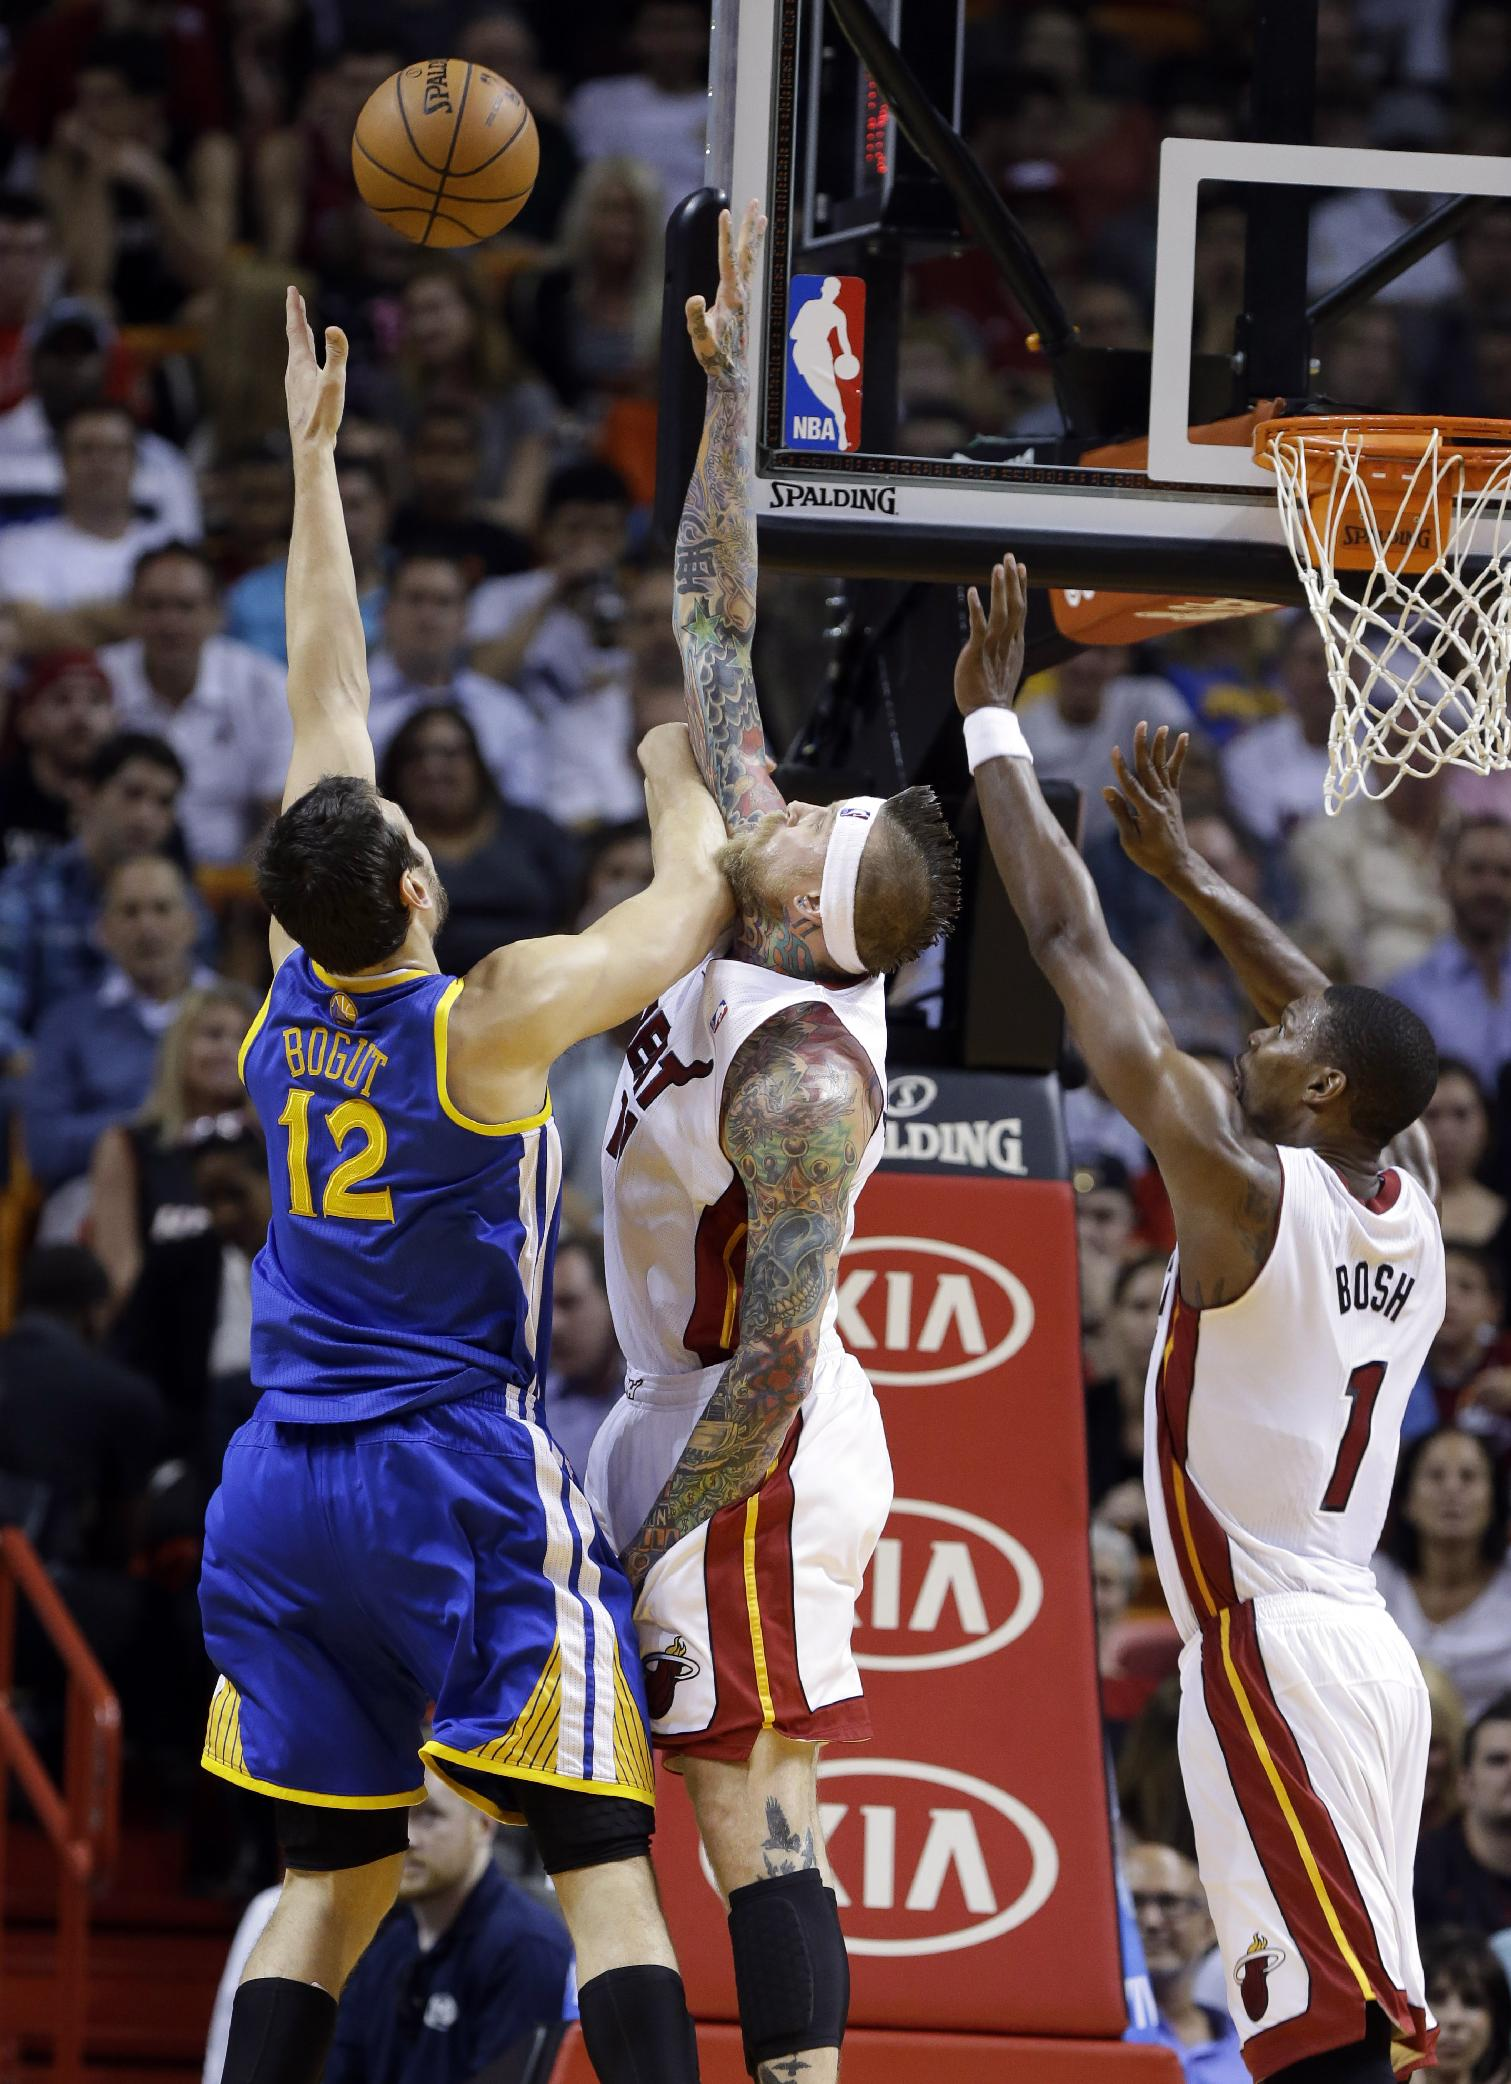 Golden State Warriors' Andrew Bogut (12) shoots as Miami Heat's Chris Andersen, center, and Chris Bosh (1) defend during the first half of an NBA basketball game, Thursday, Jan. 2, 2014, in Miami